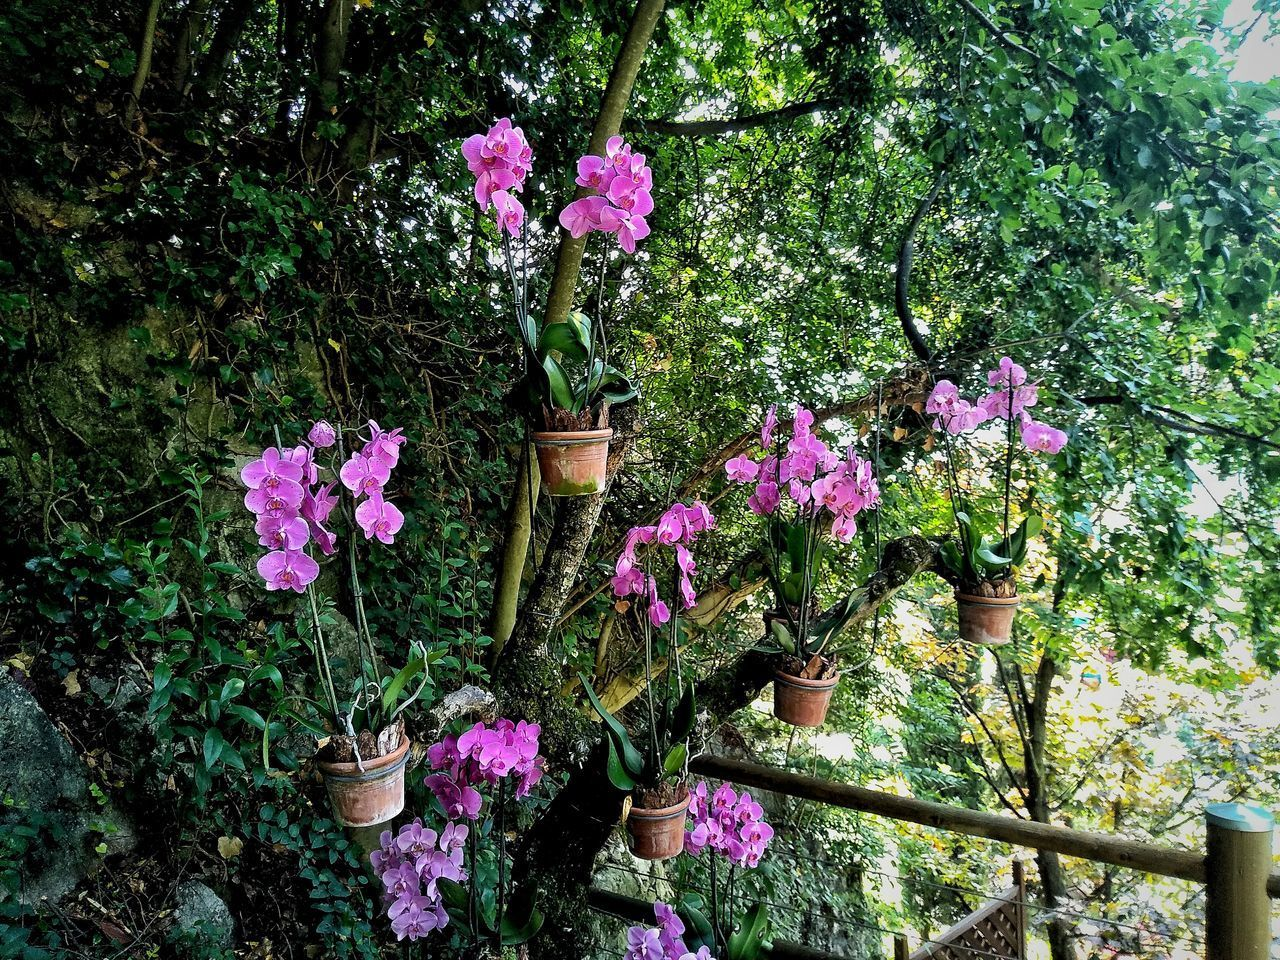 CLOSE-UP OF PINK FLOWERING PLANTS AGAINST TREES